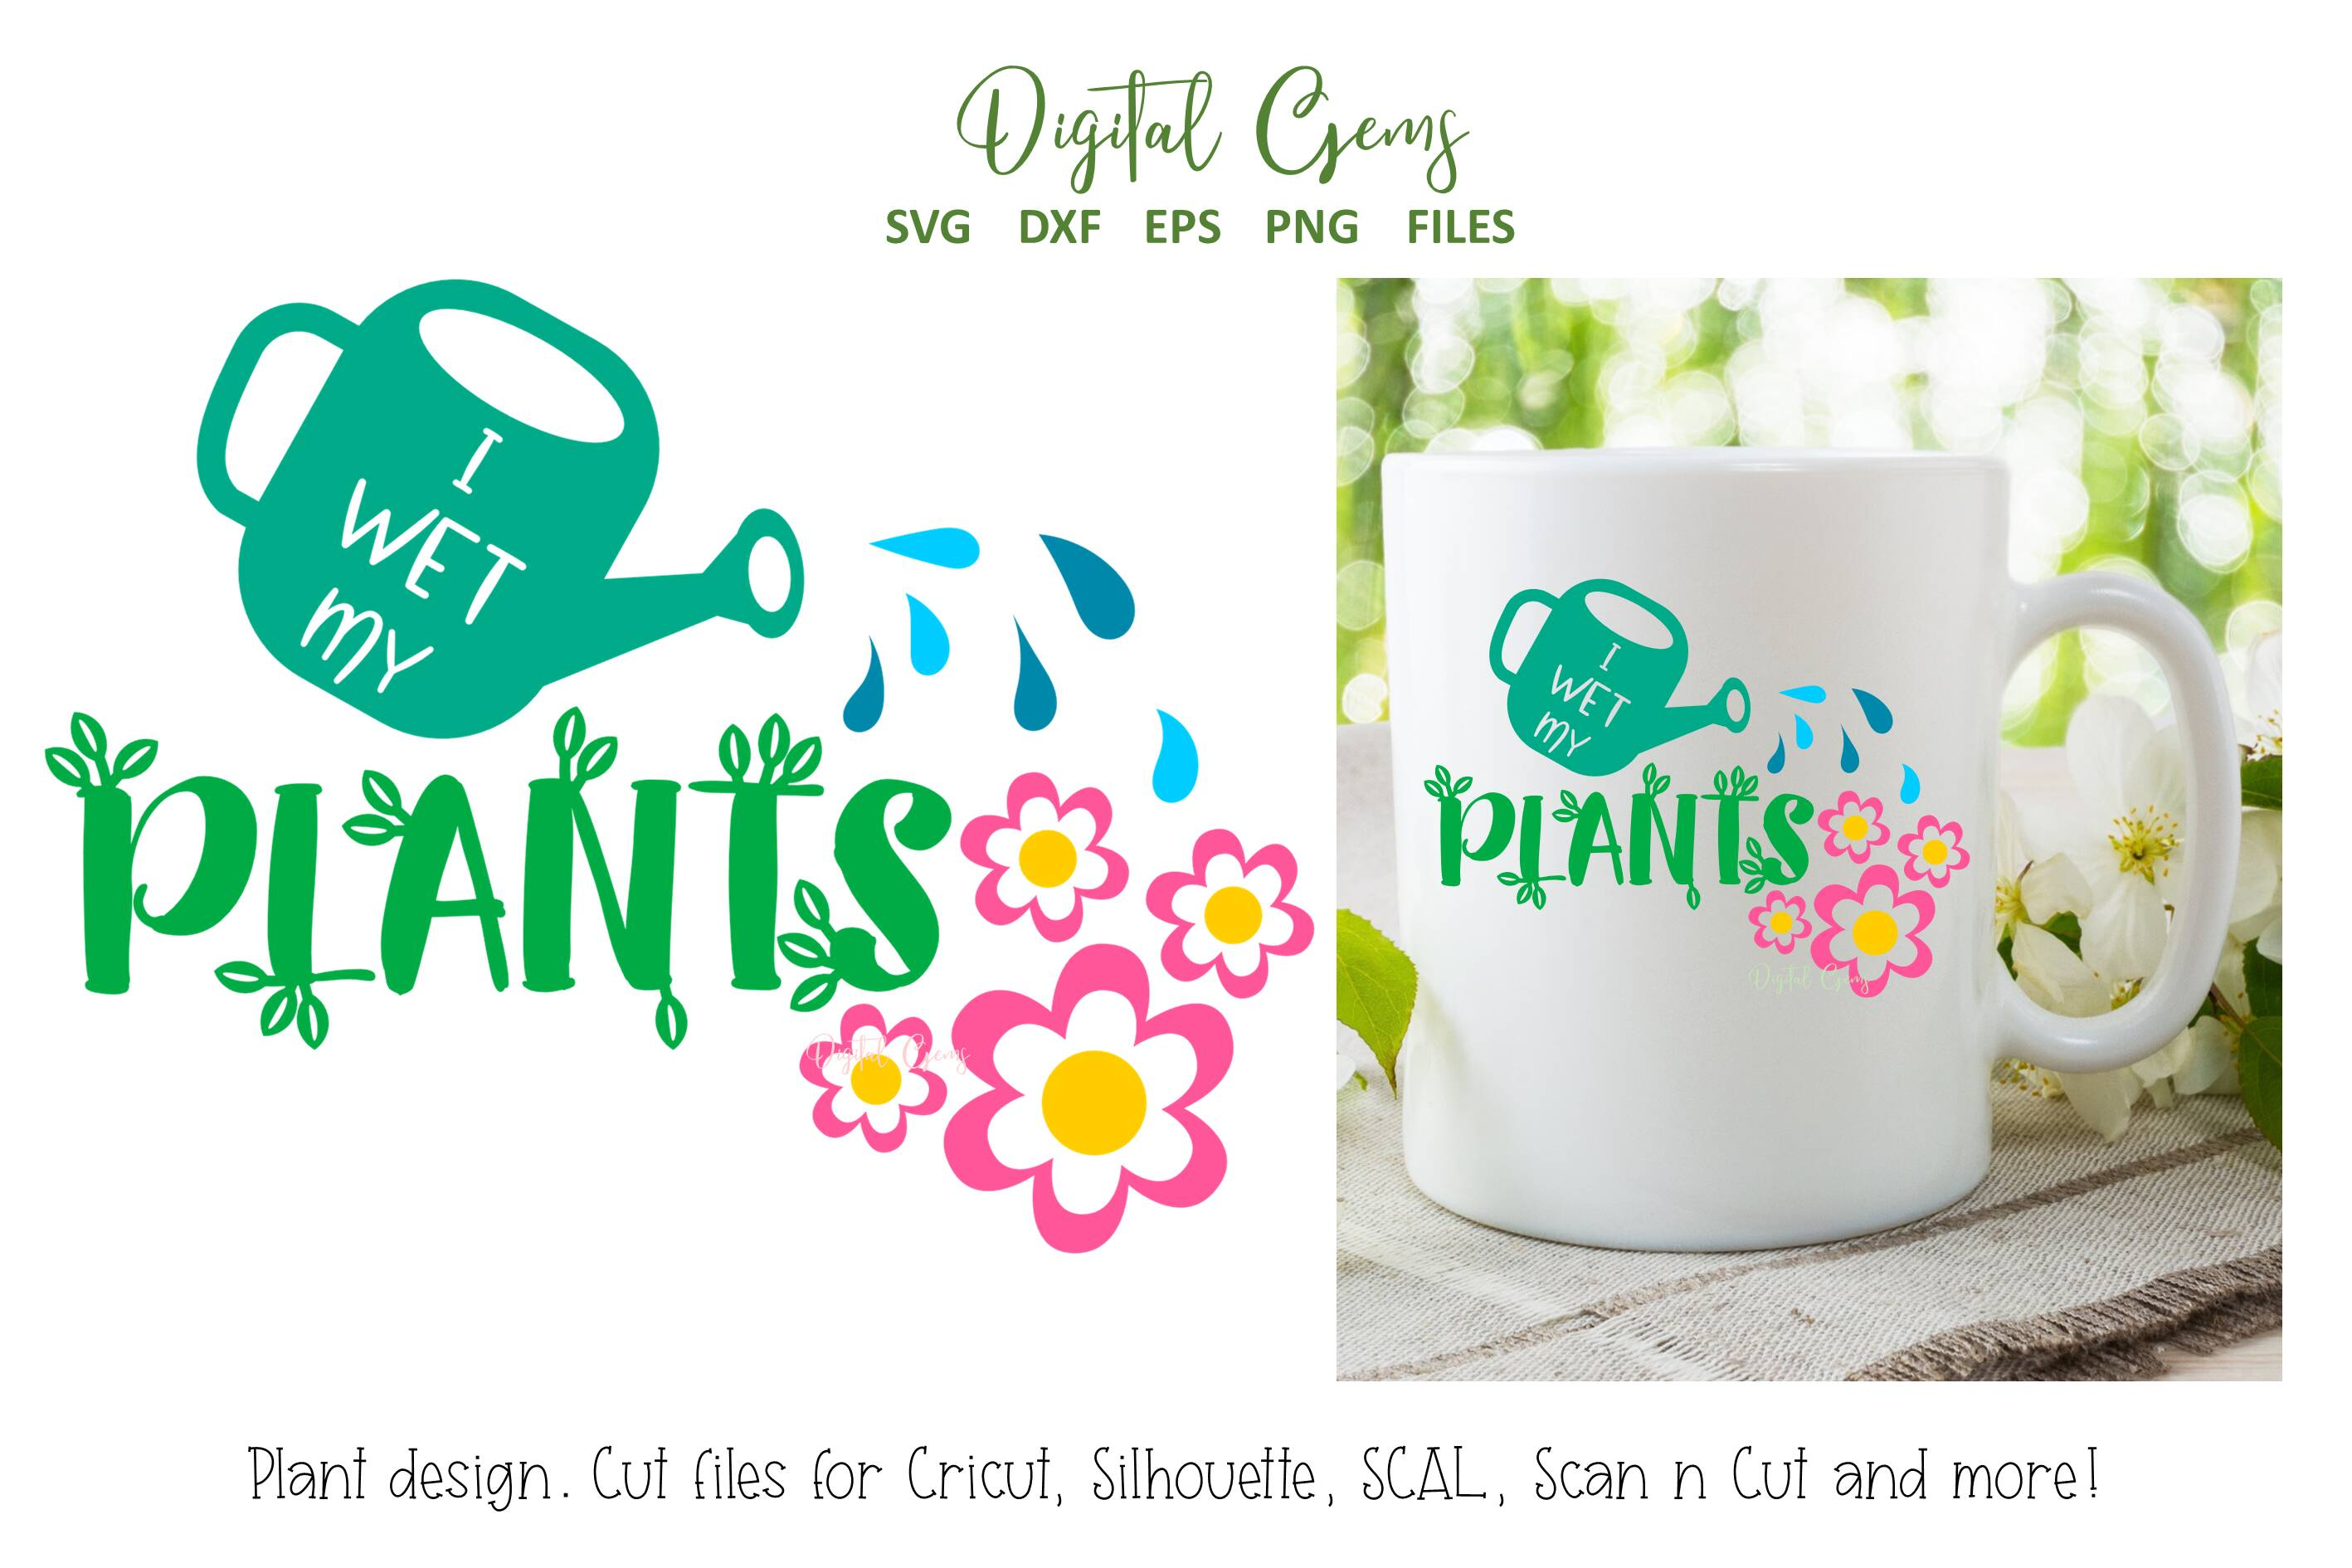 Download Free I Wet My Plants Gardening Design Graphic By Digital Gems for Cricut Explore, Silhouette and other cutting machines.